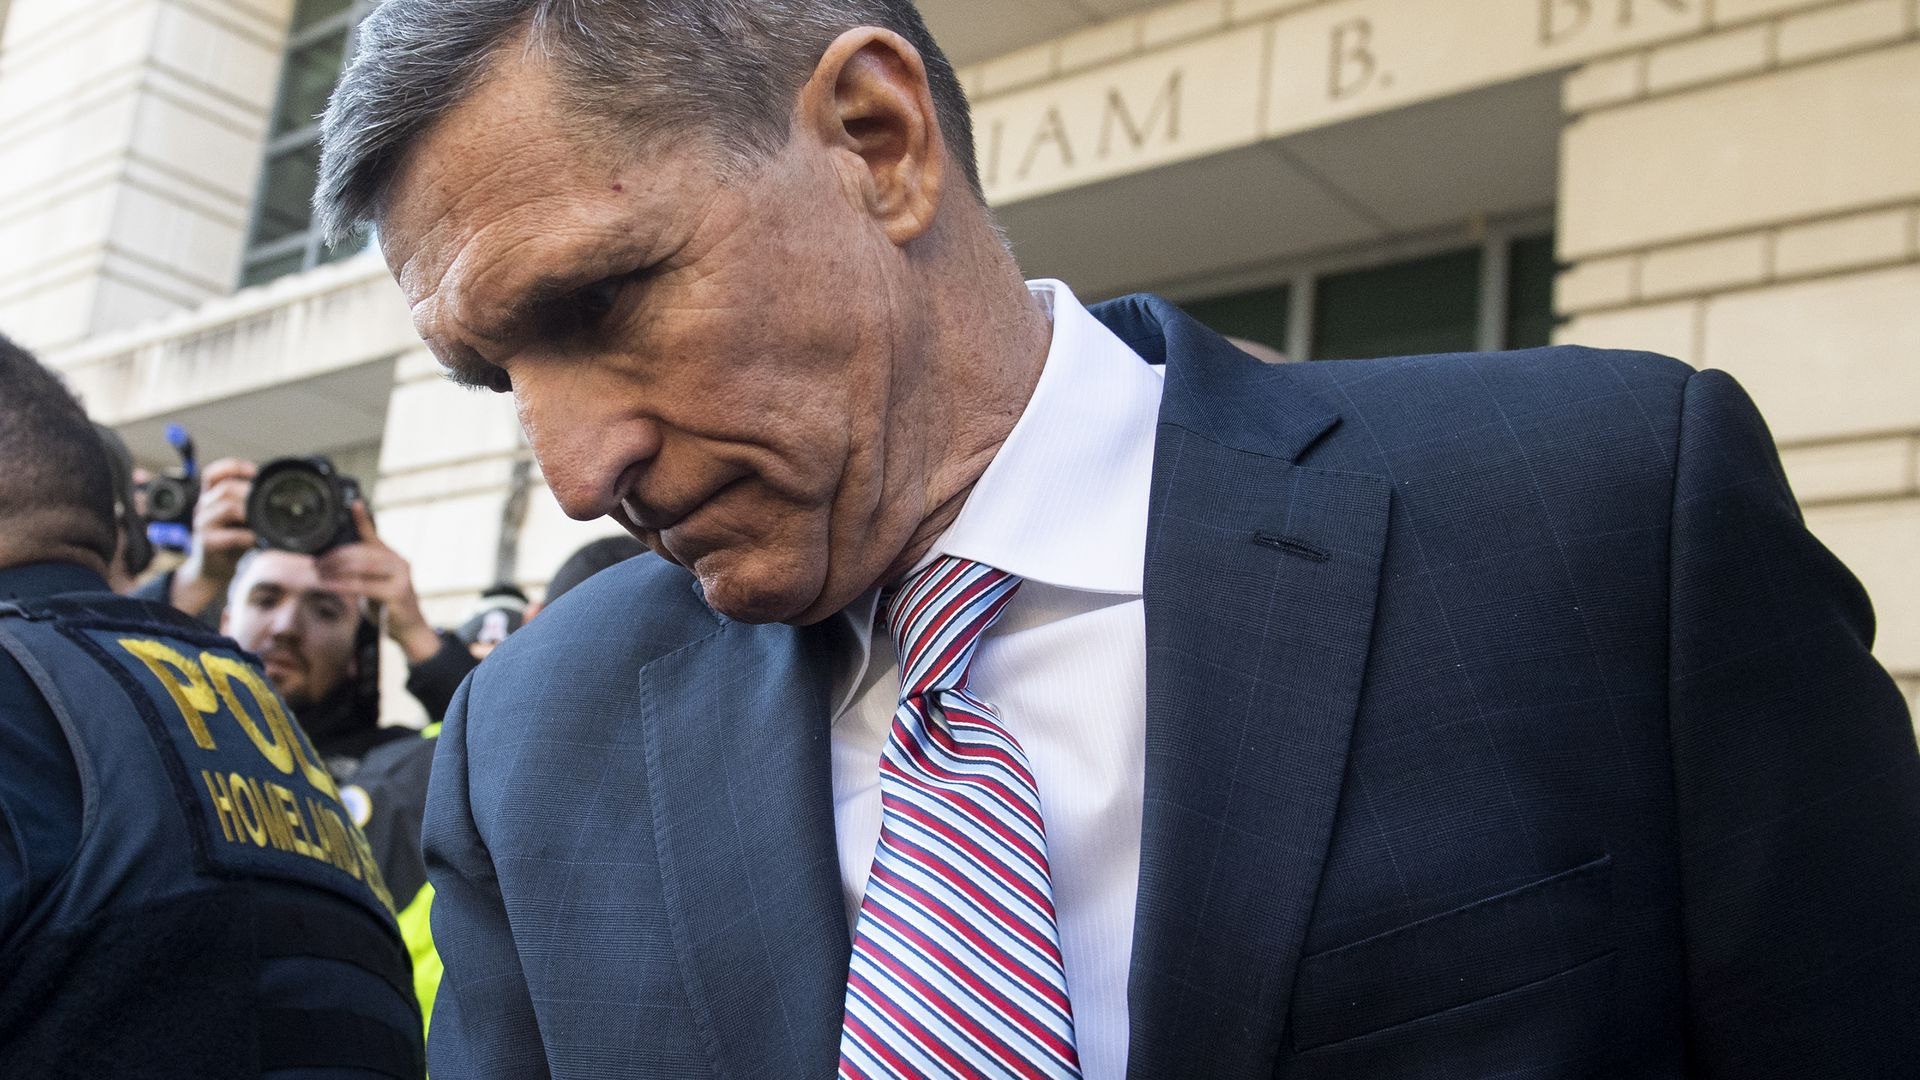 Former National Security Advisor General Michael Flynn leaves after the delay in his sentencing hearing